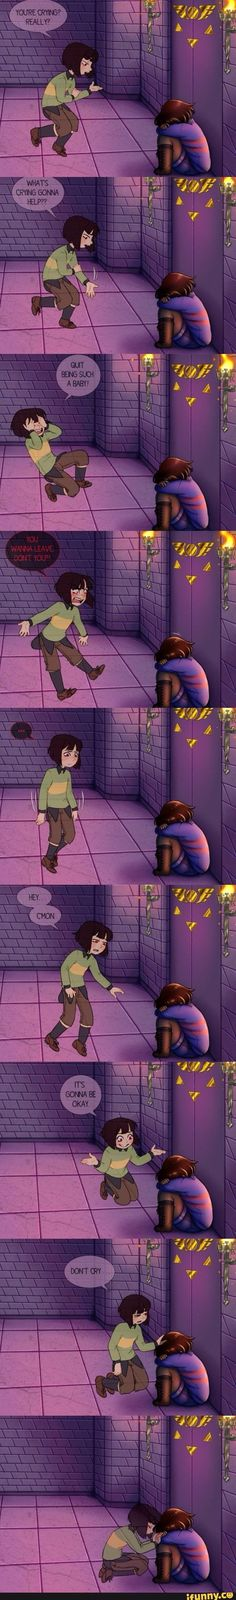 undertale, charisk, chara, frisk: